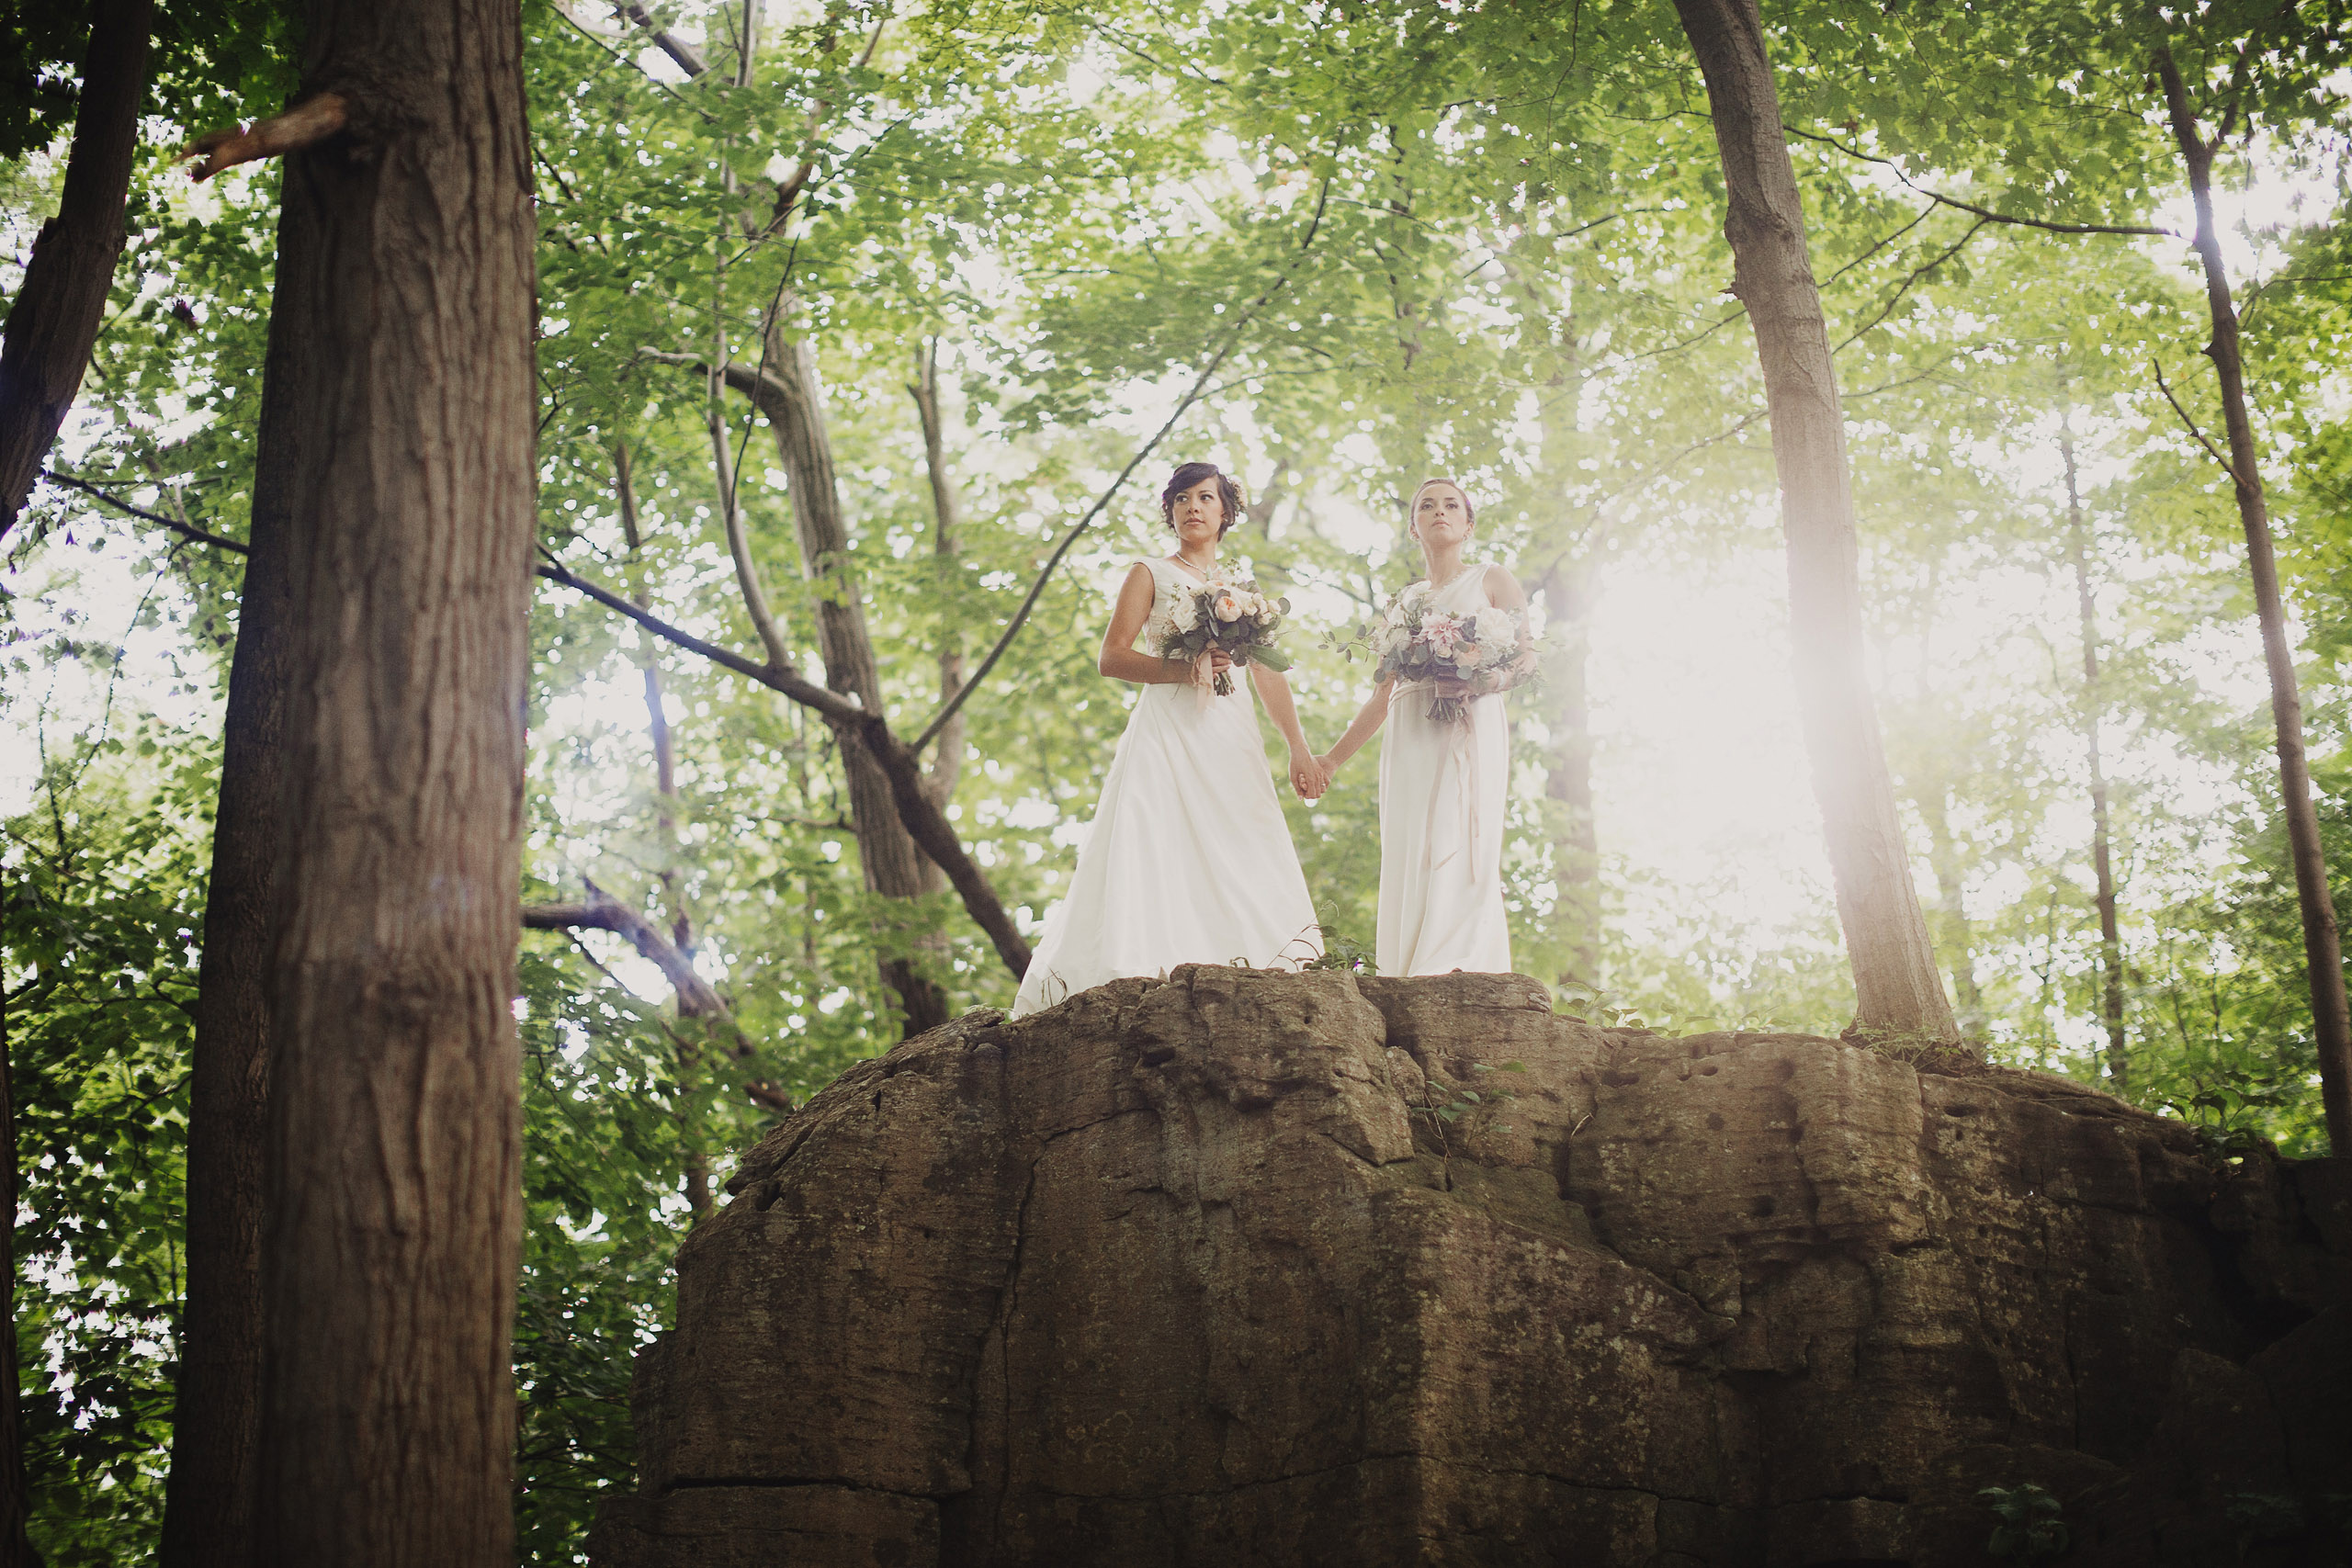 romantic wedding photography niagara same sex brides lgbtq forest